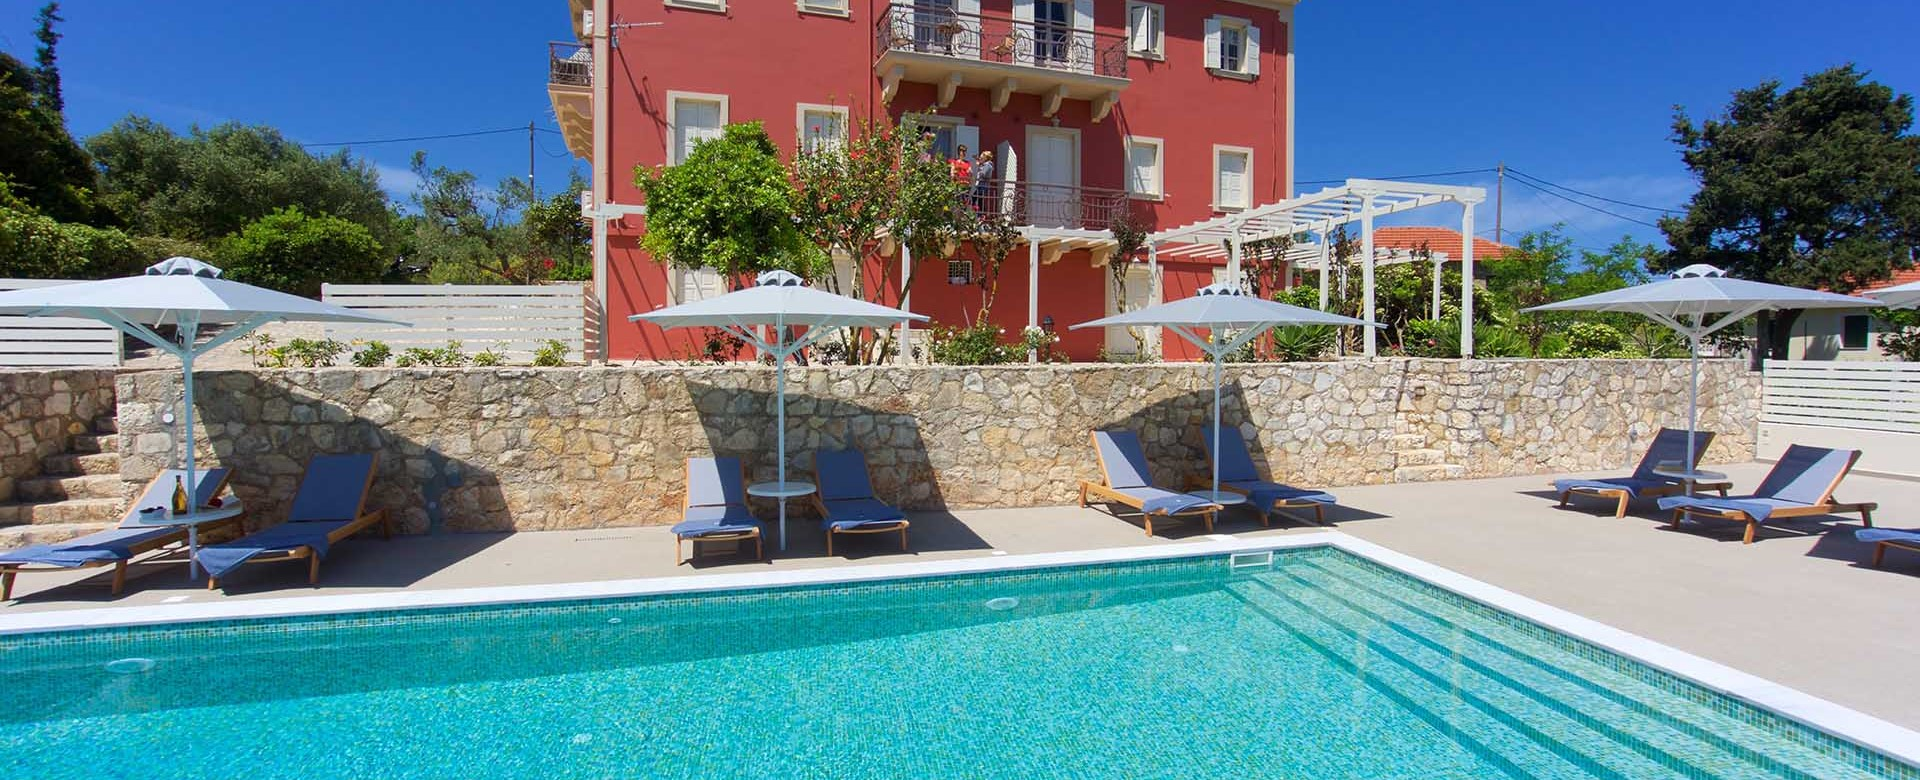 Poolside holiday at Magnolia Apartments, Fiscardo, Kefalonia, Greek Islands